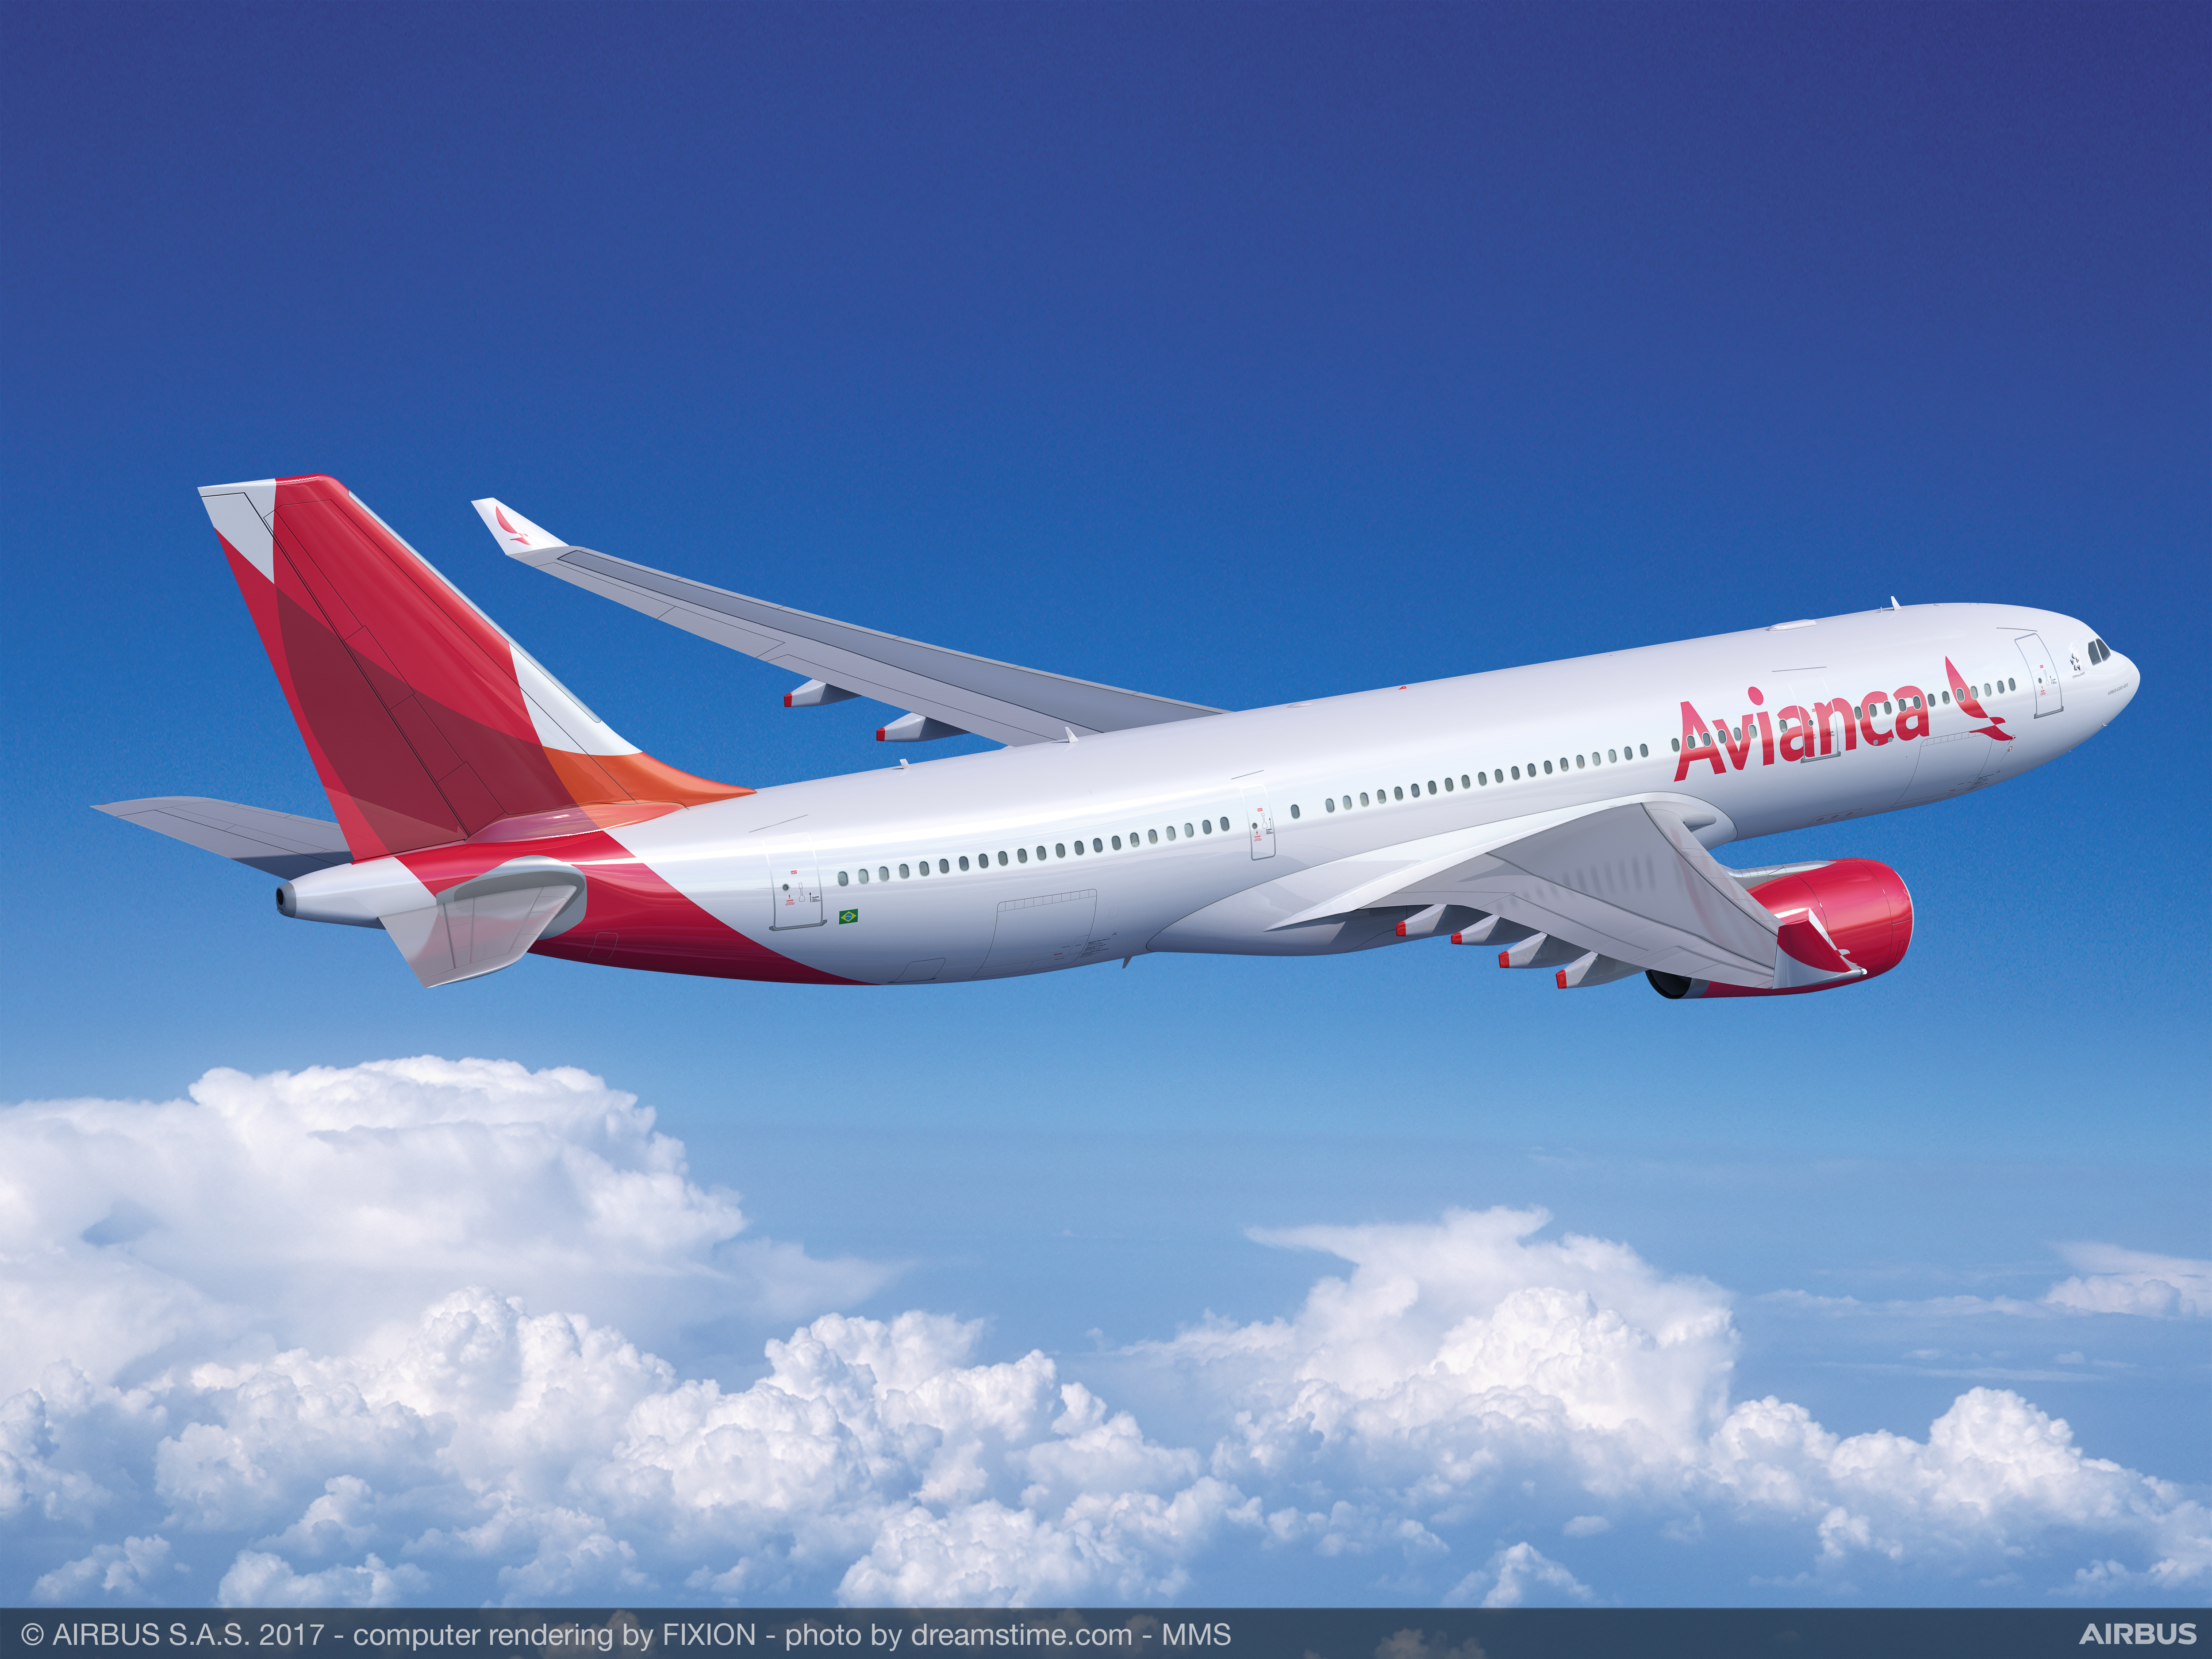 Avianca Brasil, one of Brazil's fastest-growing airlines, now offers daily nonstop passenger flights between São Paulo (GRU) and Miami (MIA). Flights are serviced by Airbus A330-200 aircraft, which seats 238 passengers. (Photo: Business Wire)